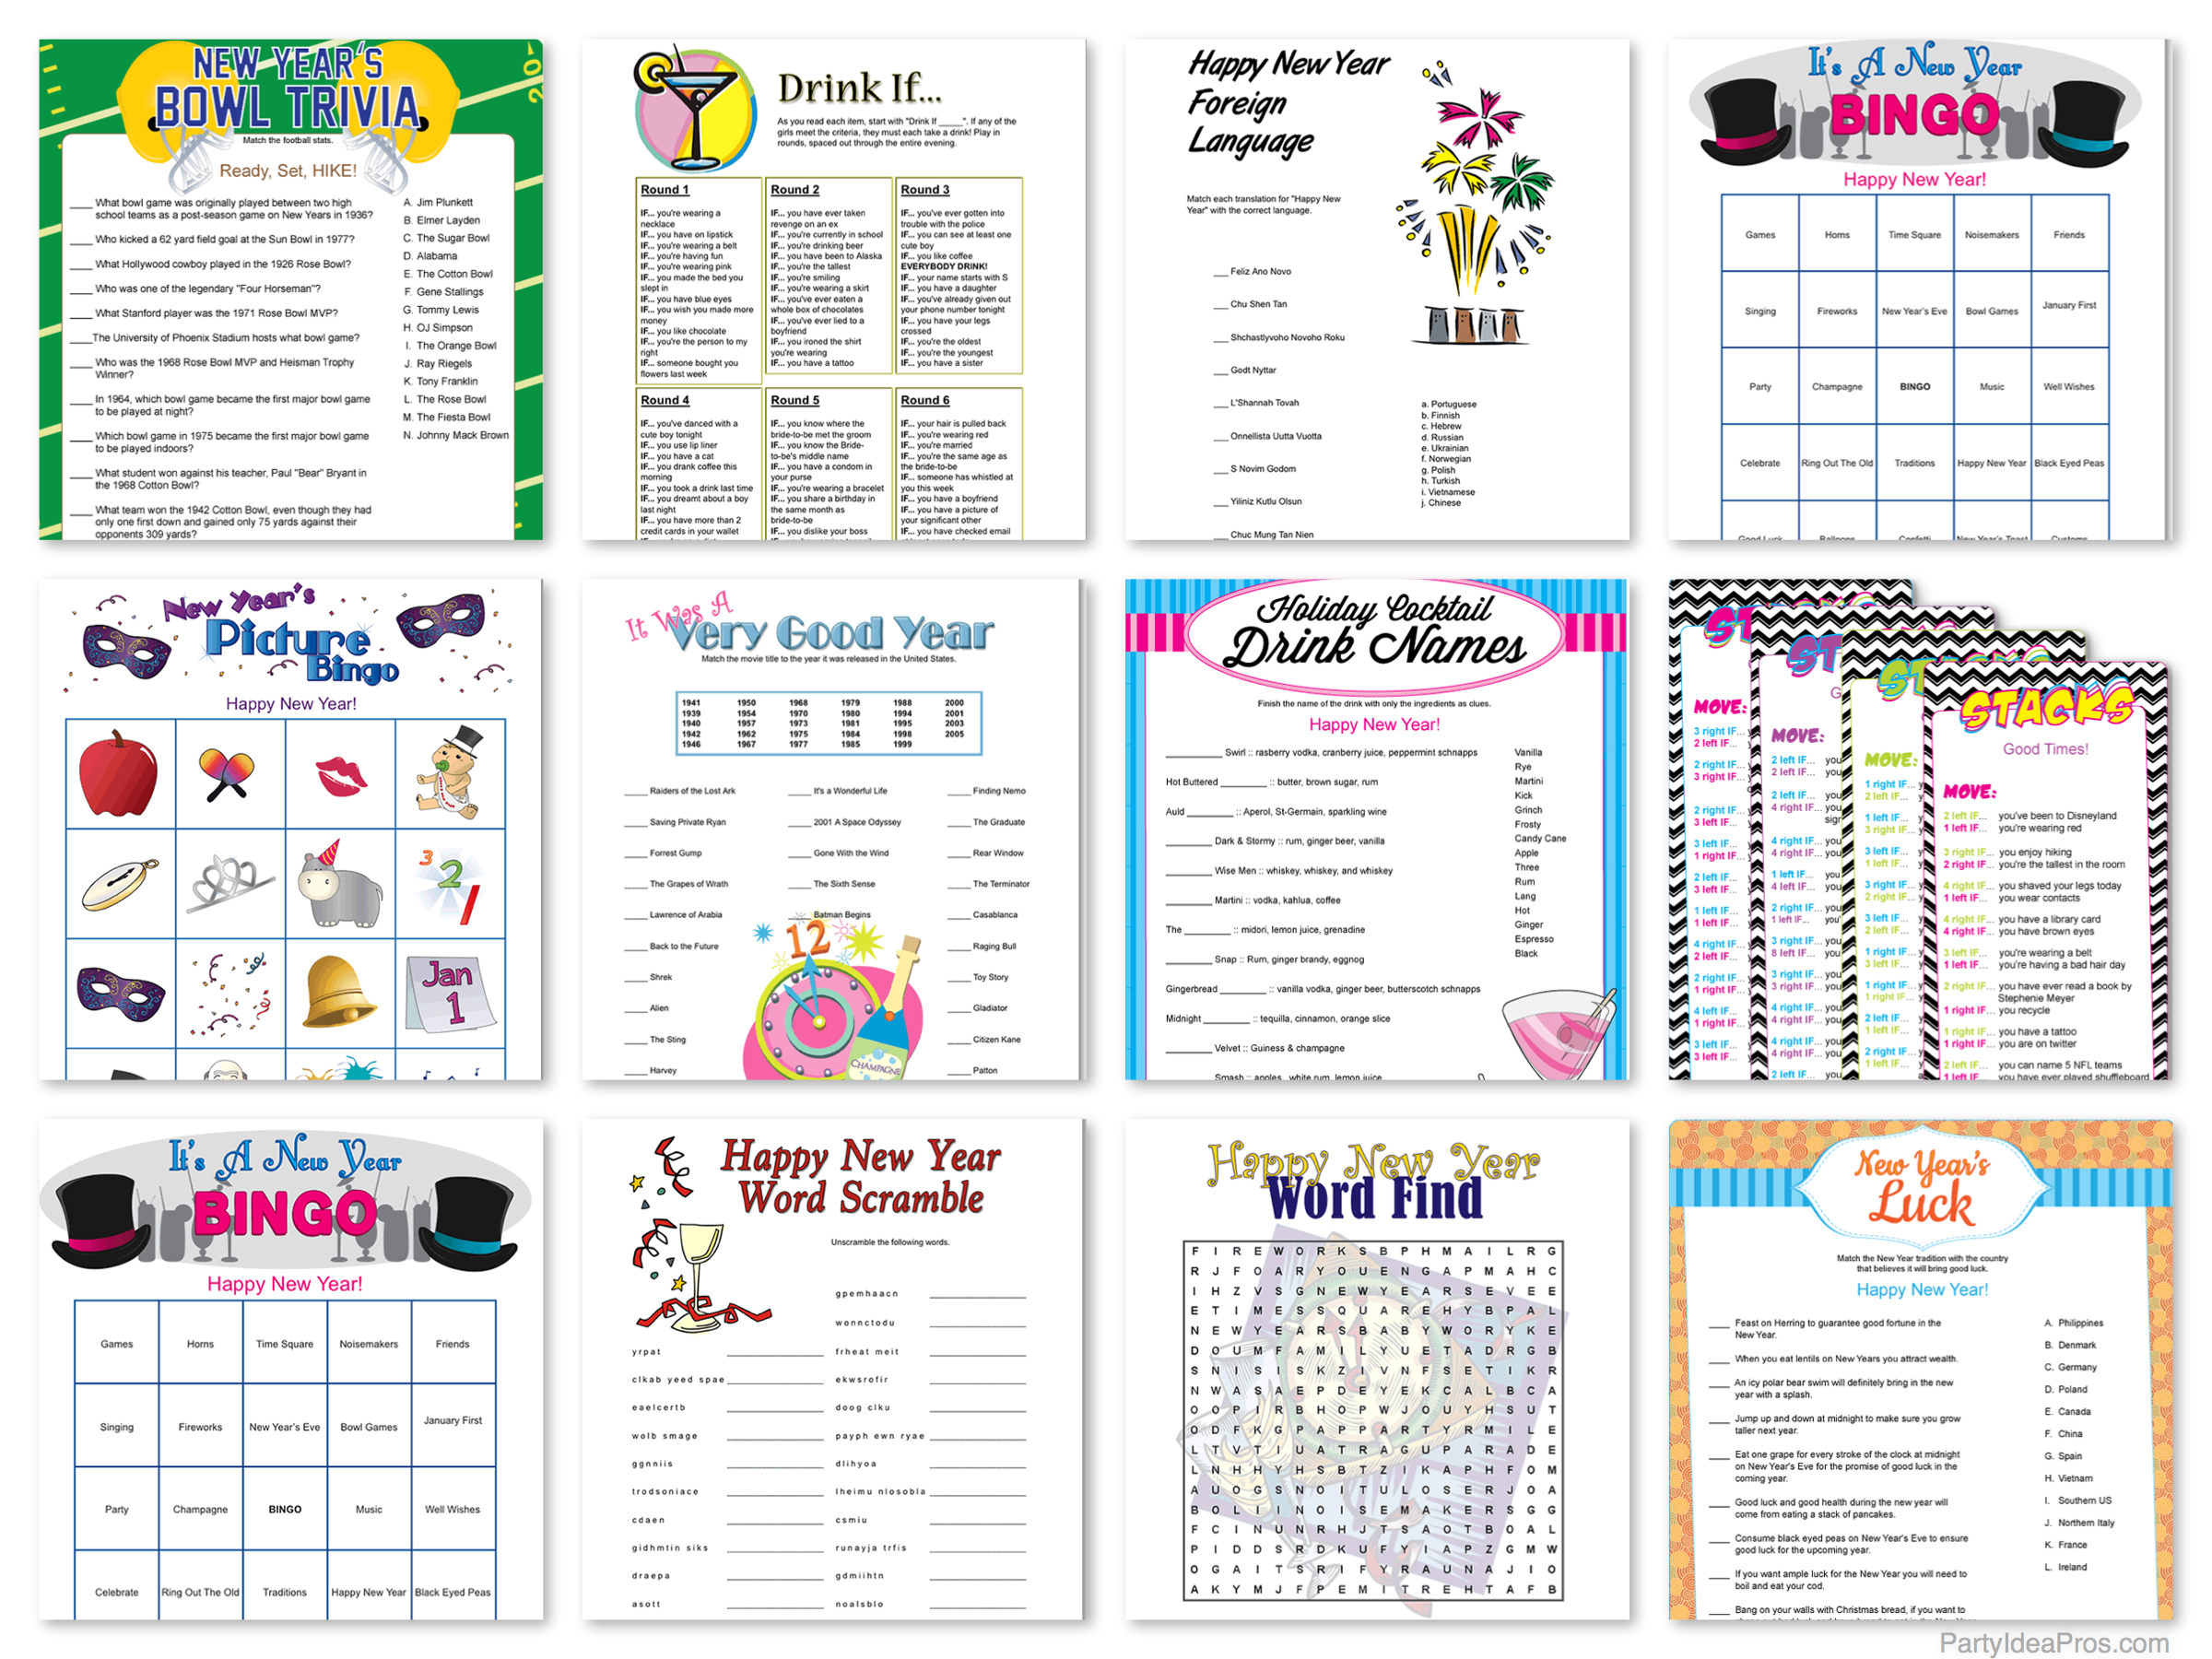 9 Images of Printable New Year Games